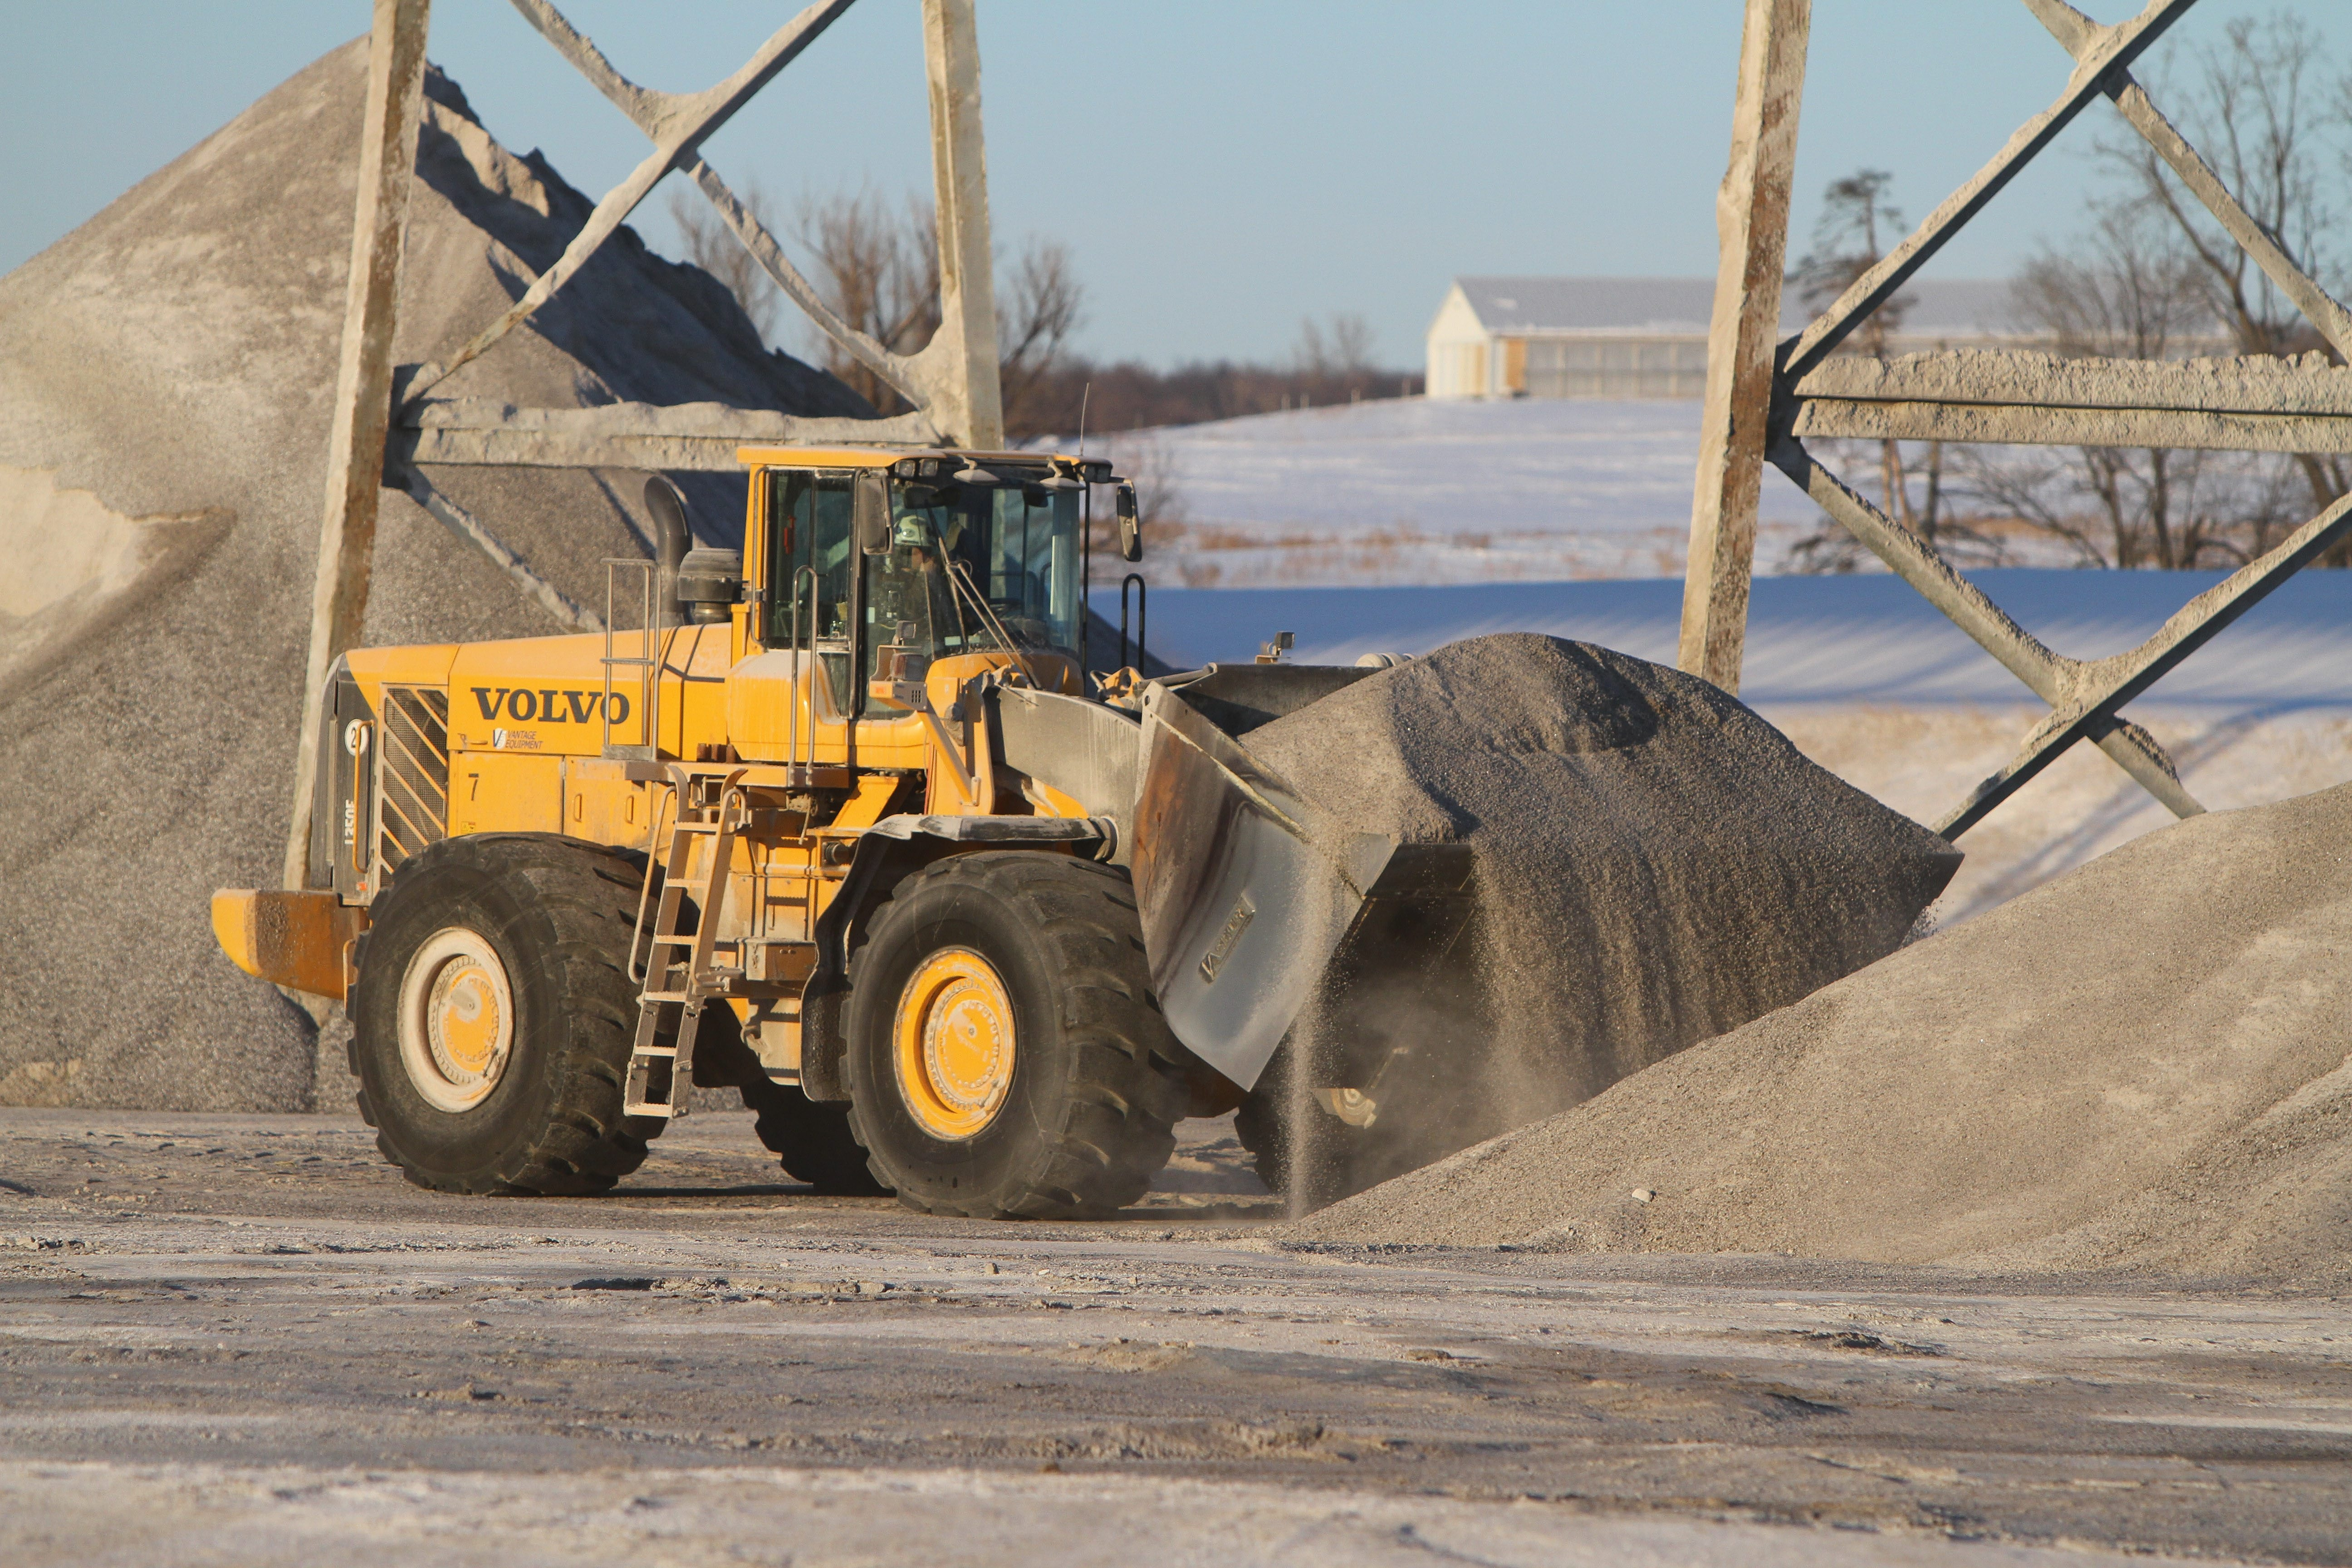 American Rock Salt miners can't get the salt out quickly enough to meet the high demand. Watch a video and see a photo gallery from the mine at BuffaloNews.com.